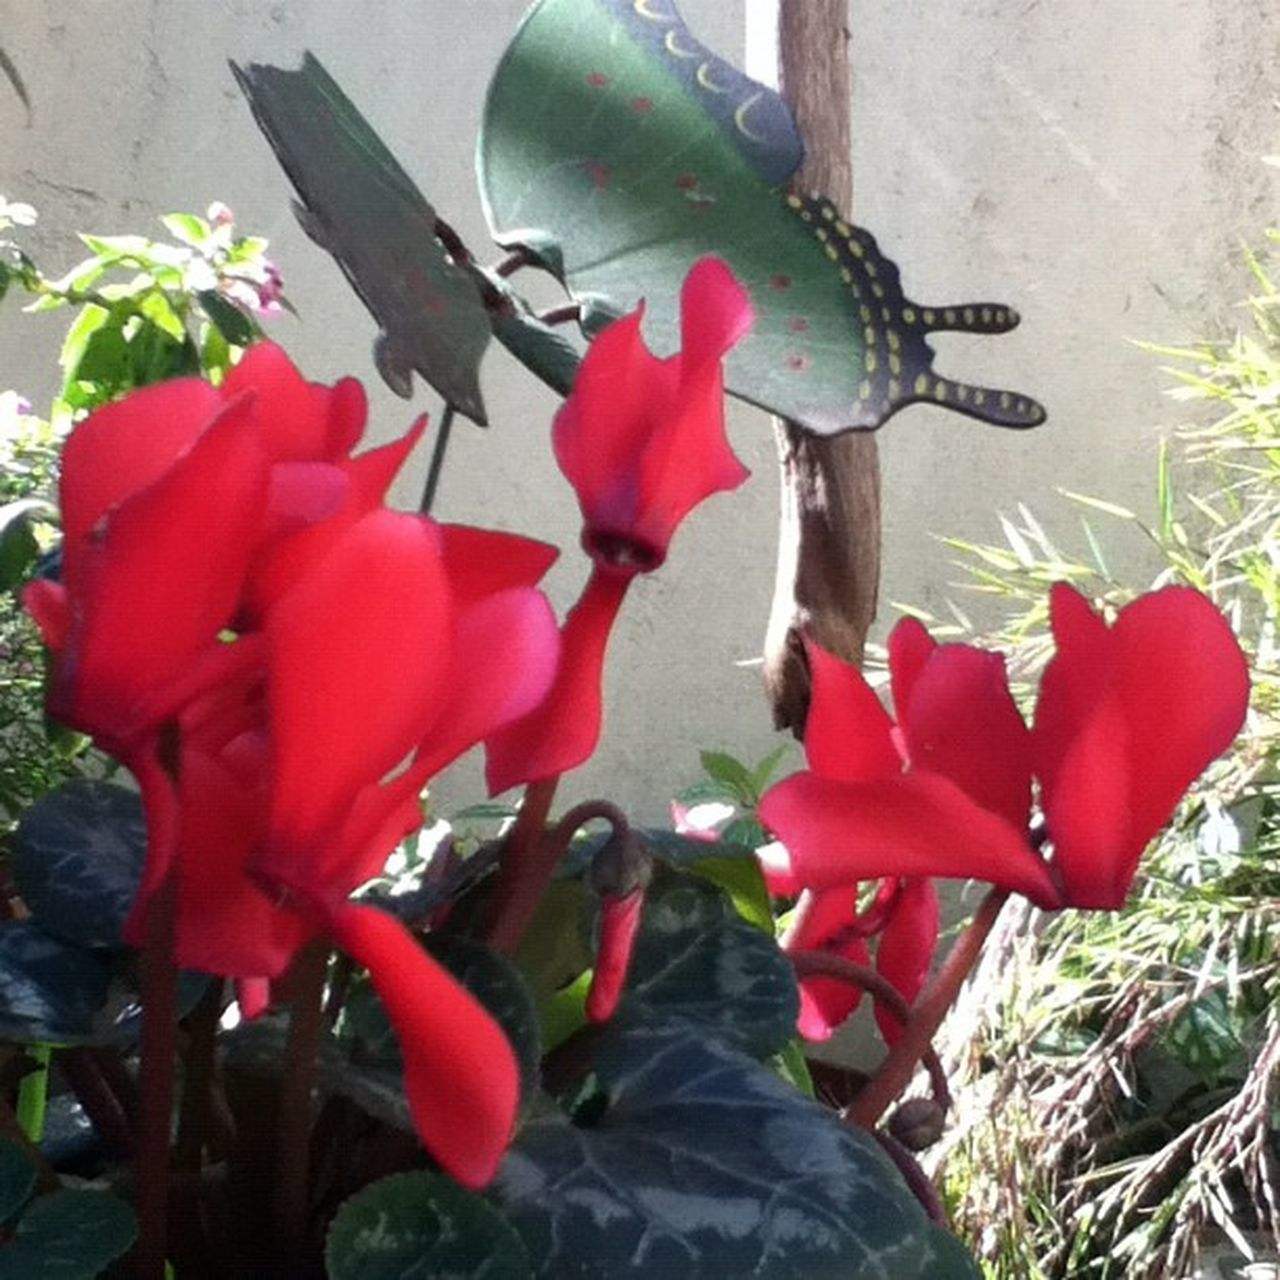 growth, red, plant, nature, flower, day, outdoors, close-up, beauty in nature, no people, fragility, freshness, flower head